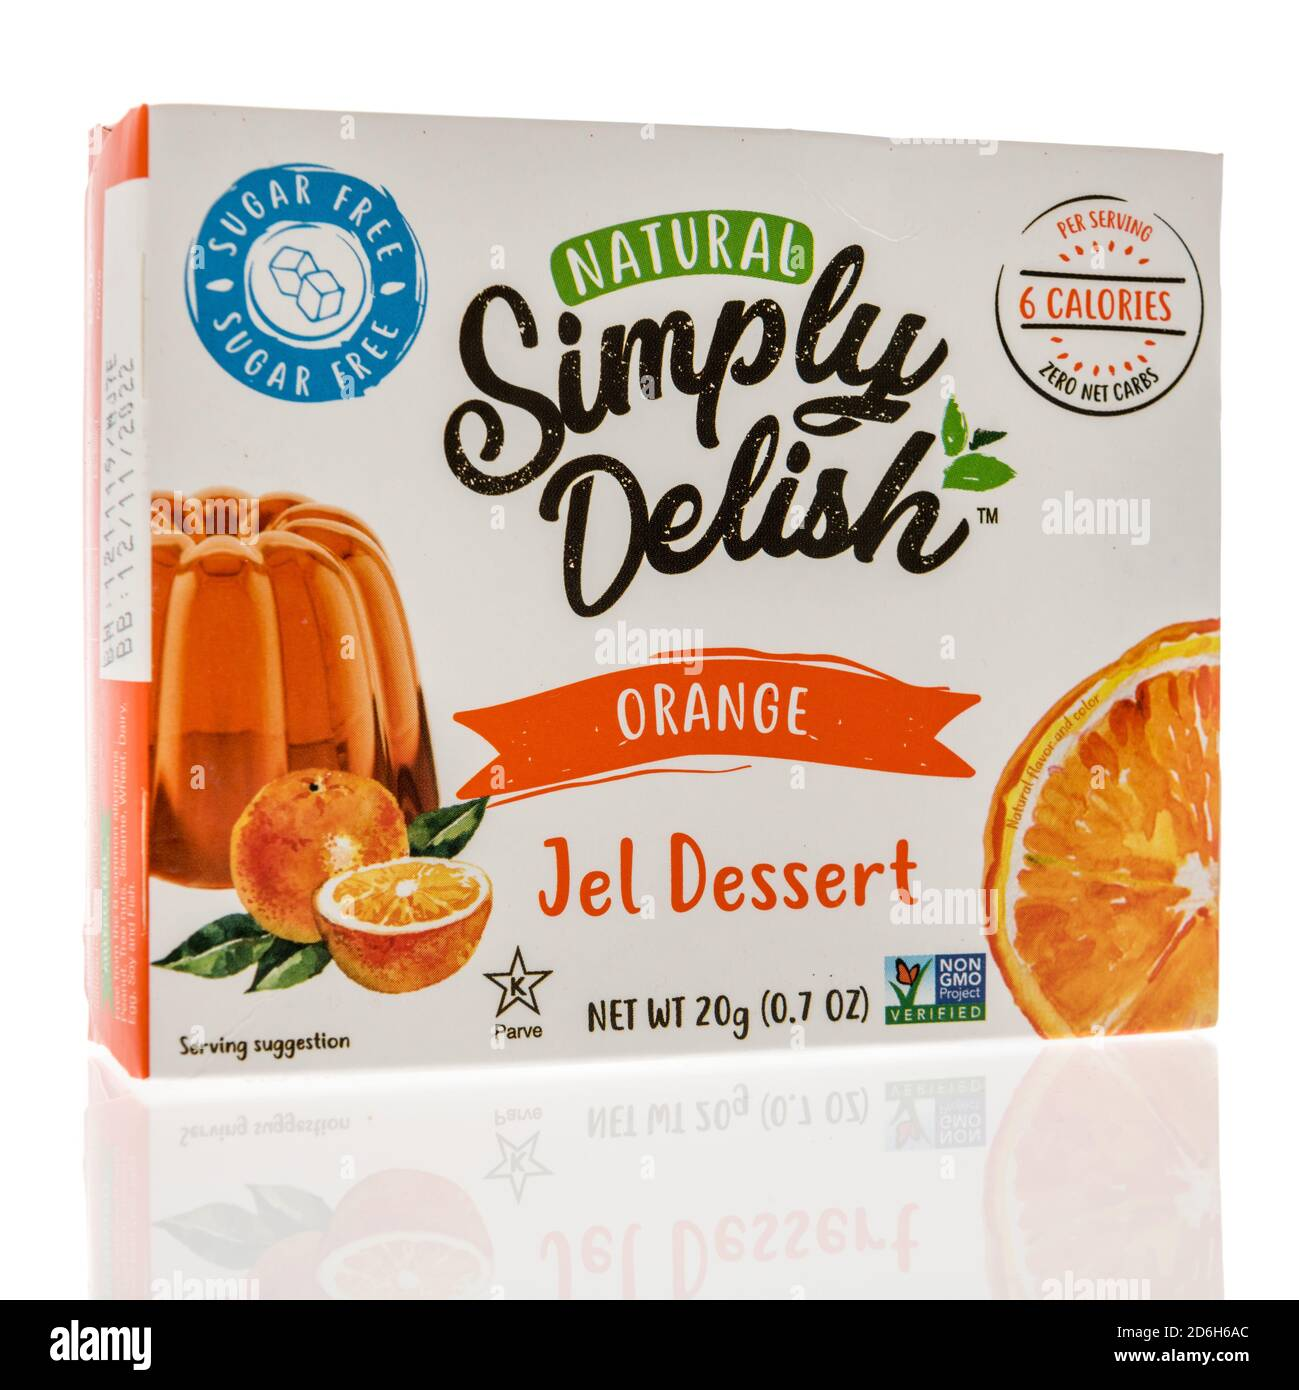 Winneconne, WI - 16 October 2020:  A package of Simply delsih jel dessert on an isolated background. Stock Photo